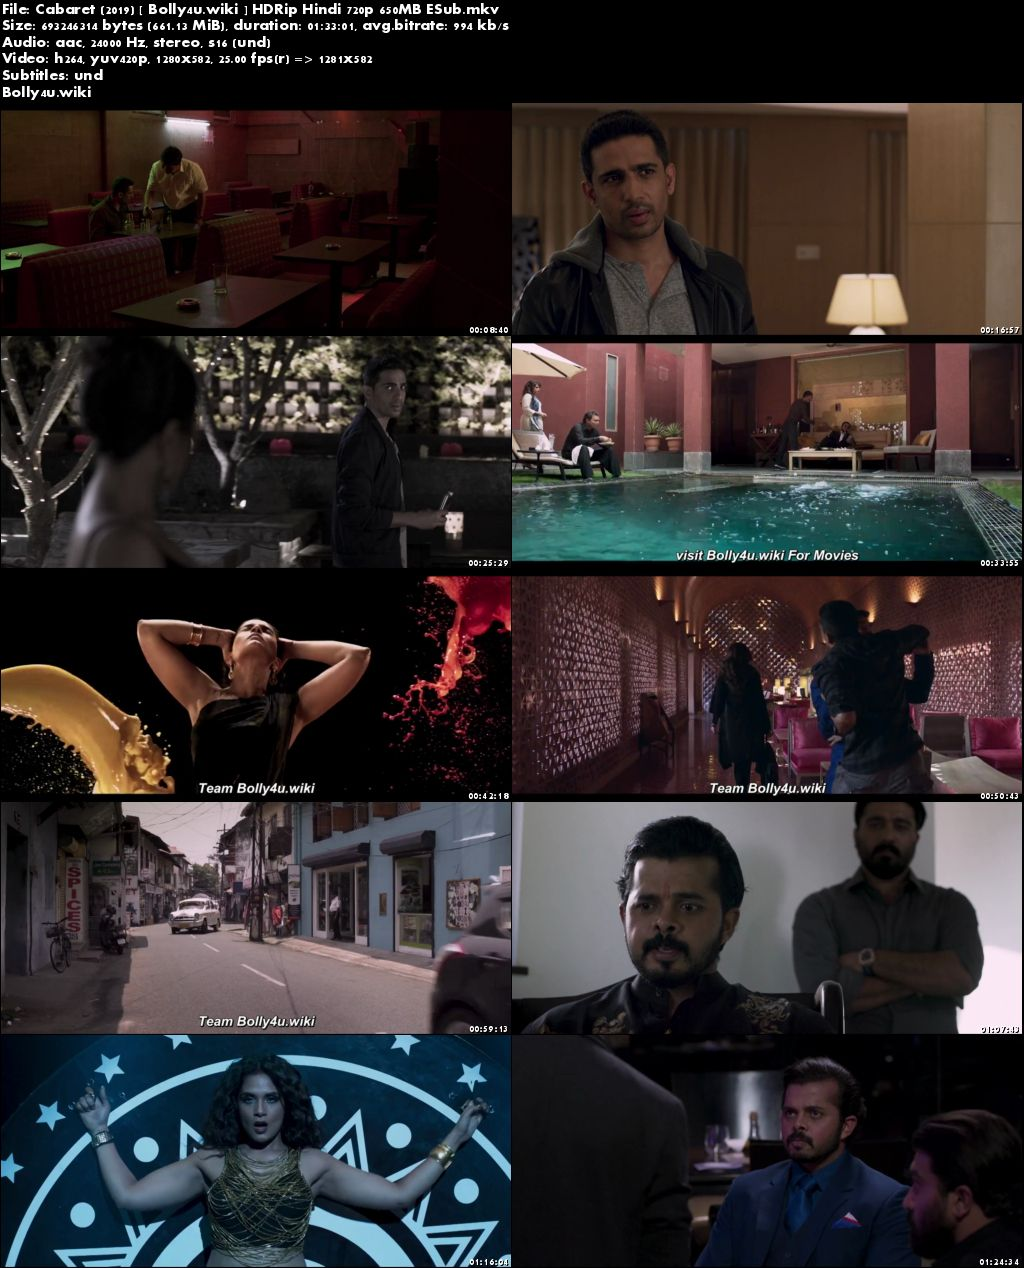 Cabaret 2019 HDRip 650Mb Full Hindi Movie Download 720p ESub